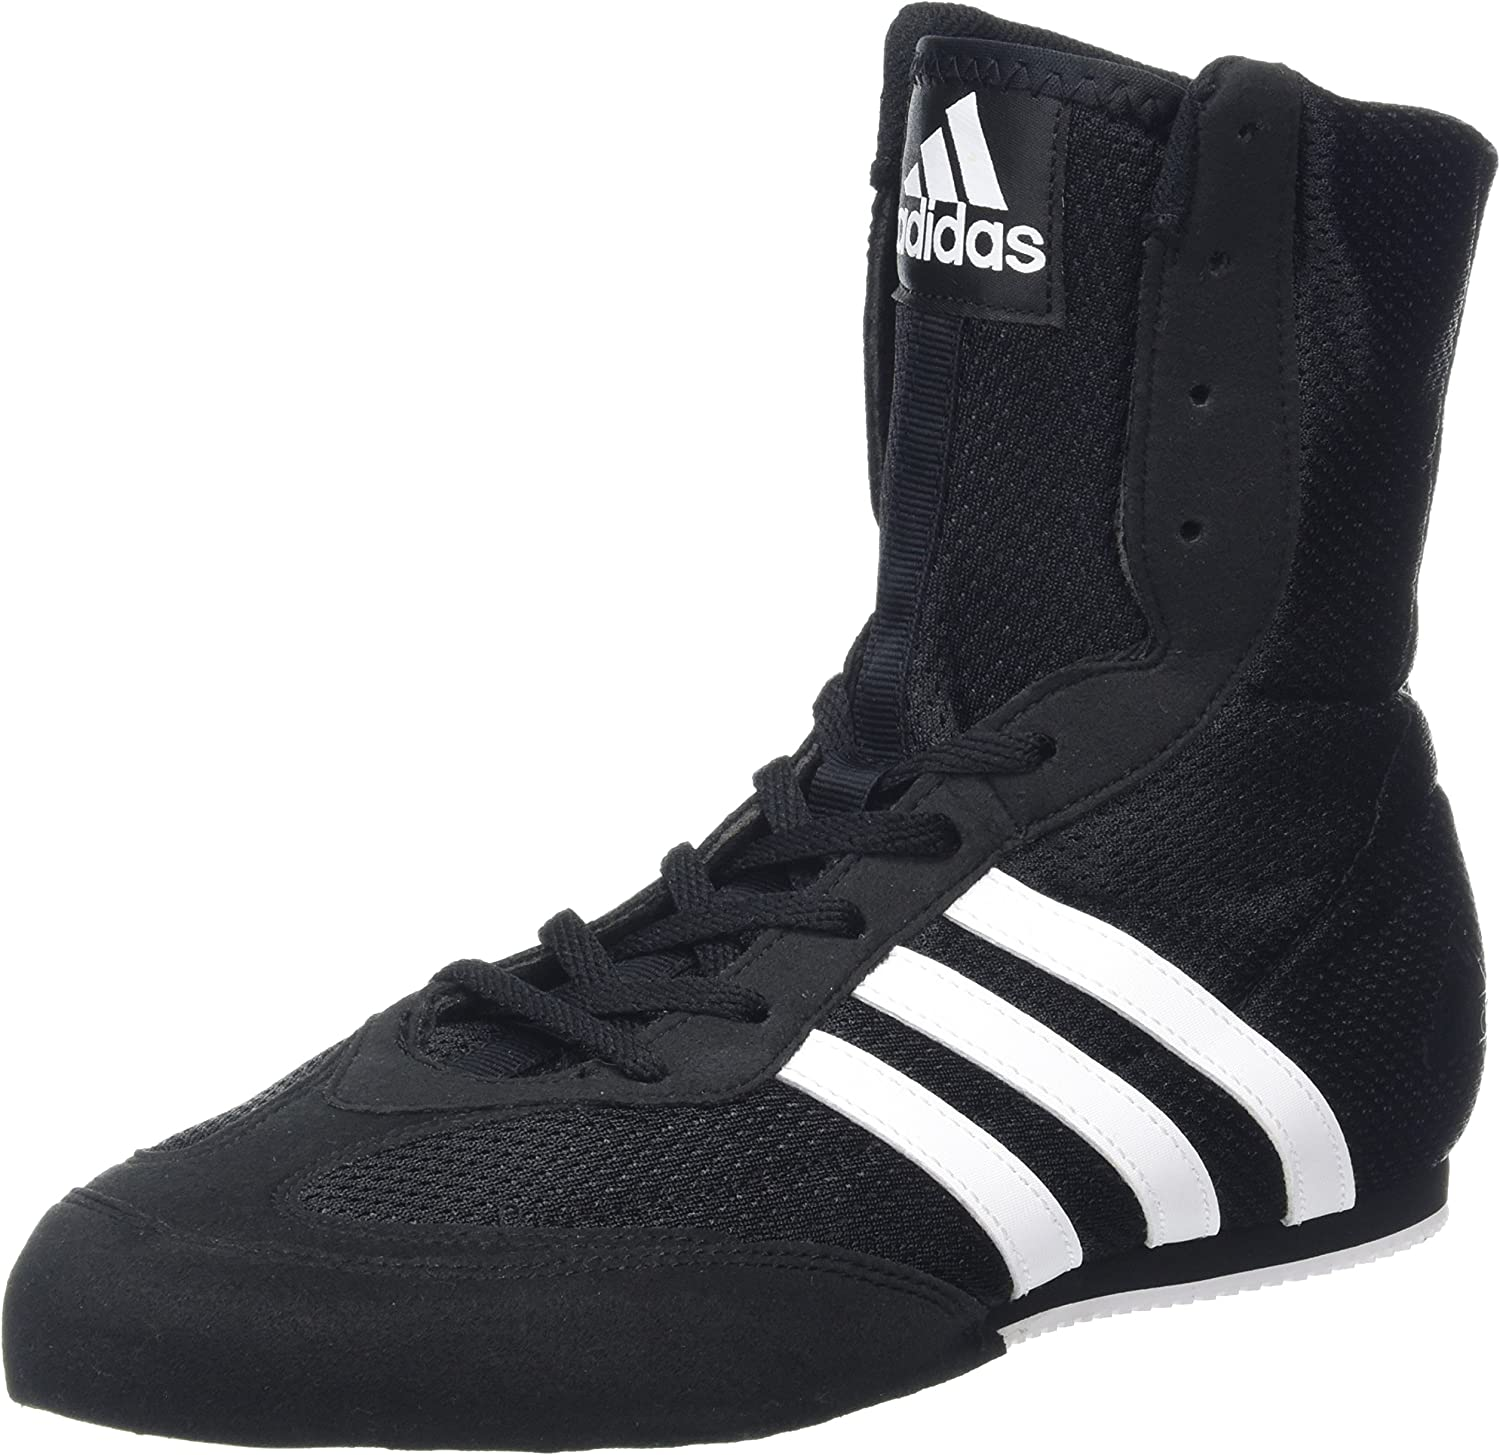 New Adidas Box Hog 2 Junior Boxing Boots Black